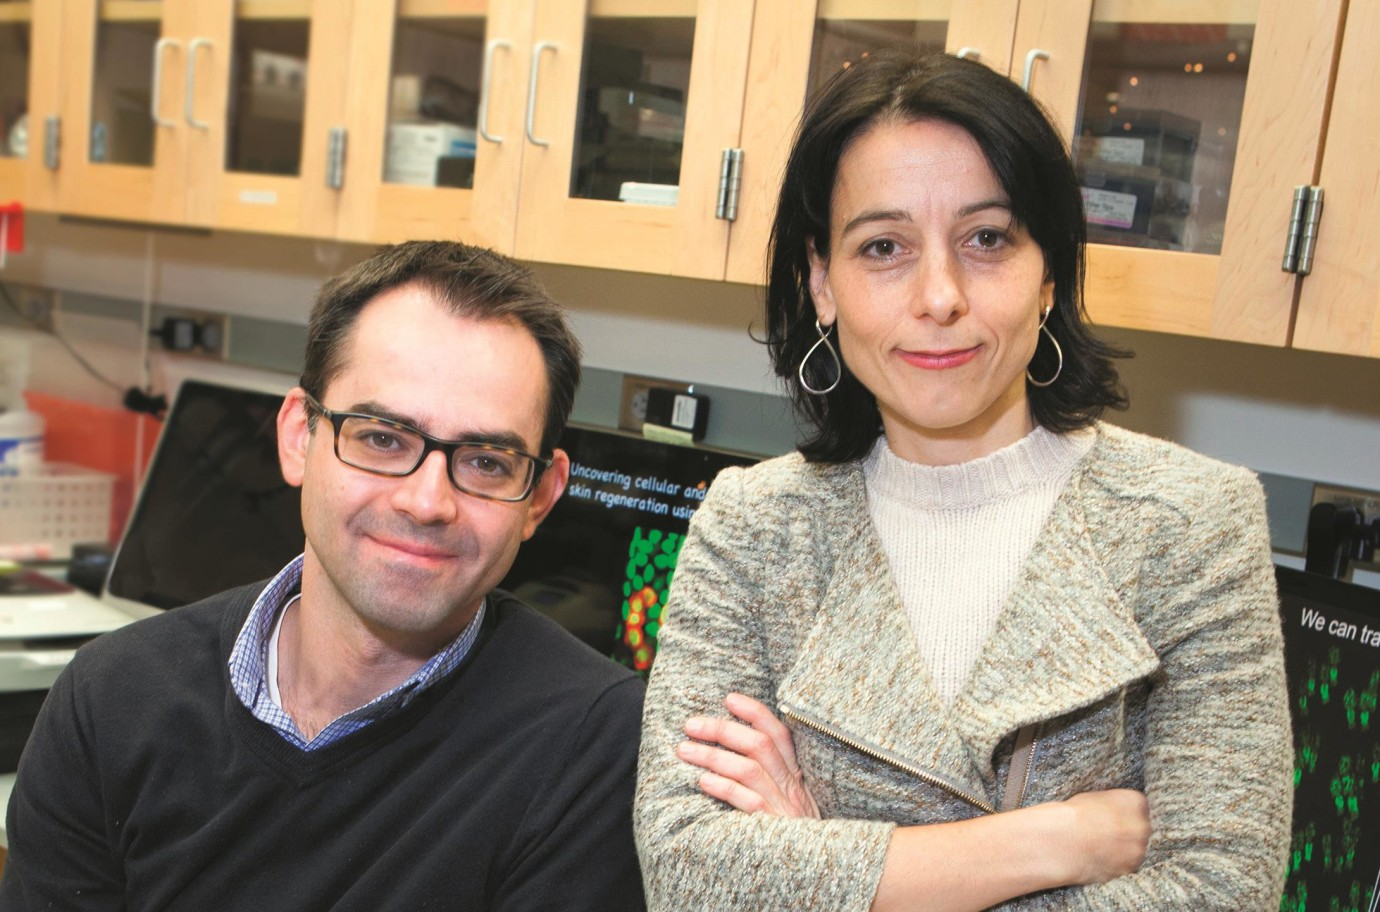 Panteleimon Rompolas (left) is a postdoctoral fellow in the lab of Valentina Greco (right).